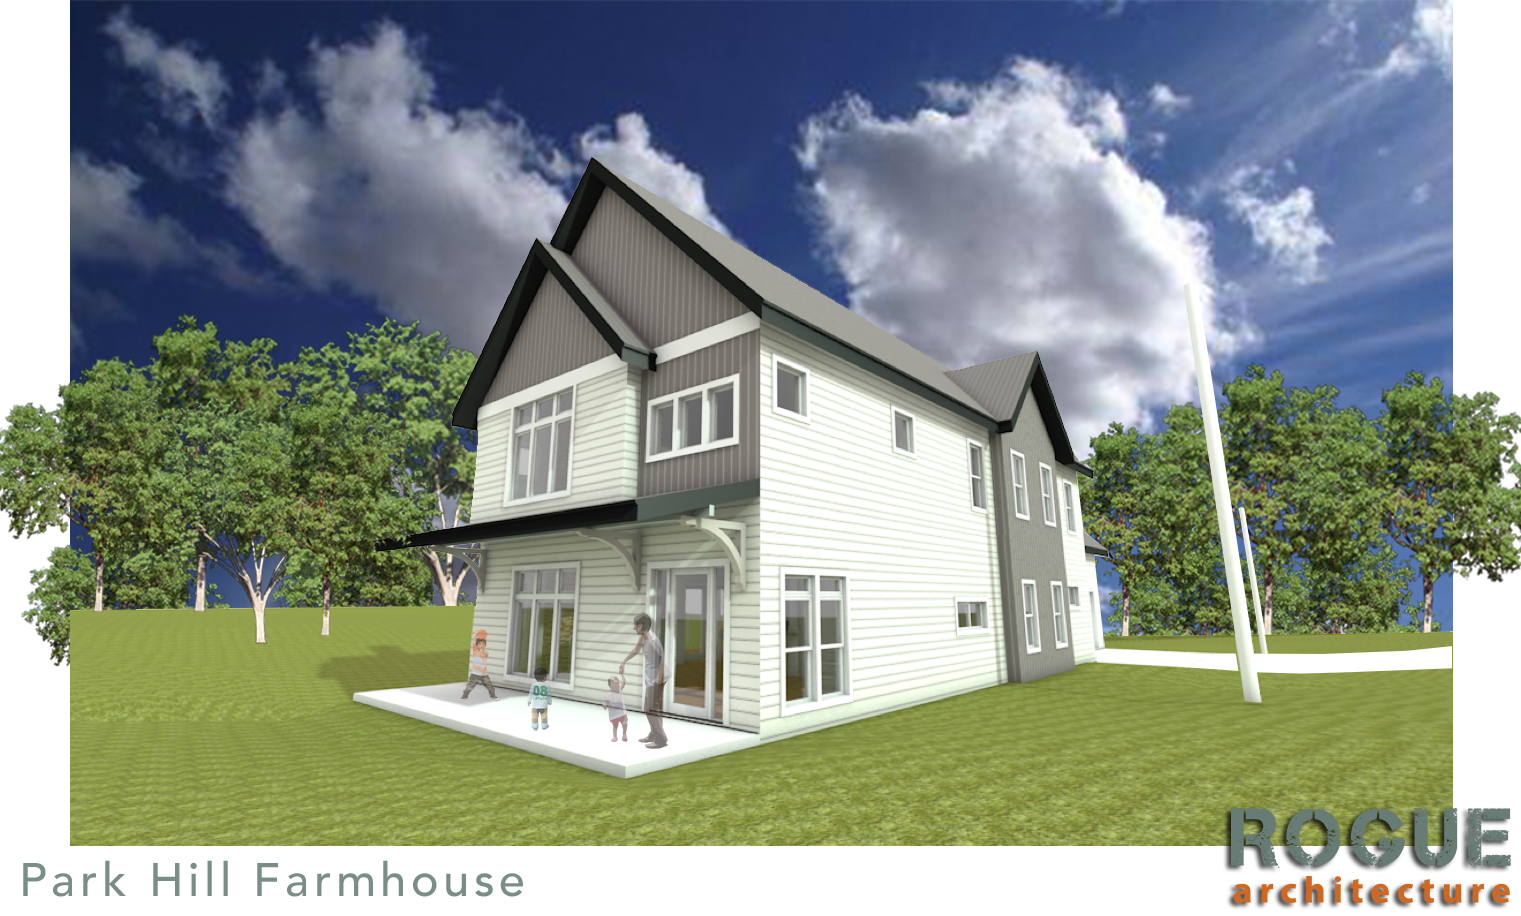 Park Hill Farmhouse - New Single Family residence designed for the historic Park Hill neighborhood of North Little Rock. Construction to start early 2018.